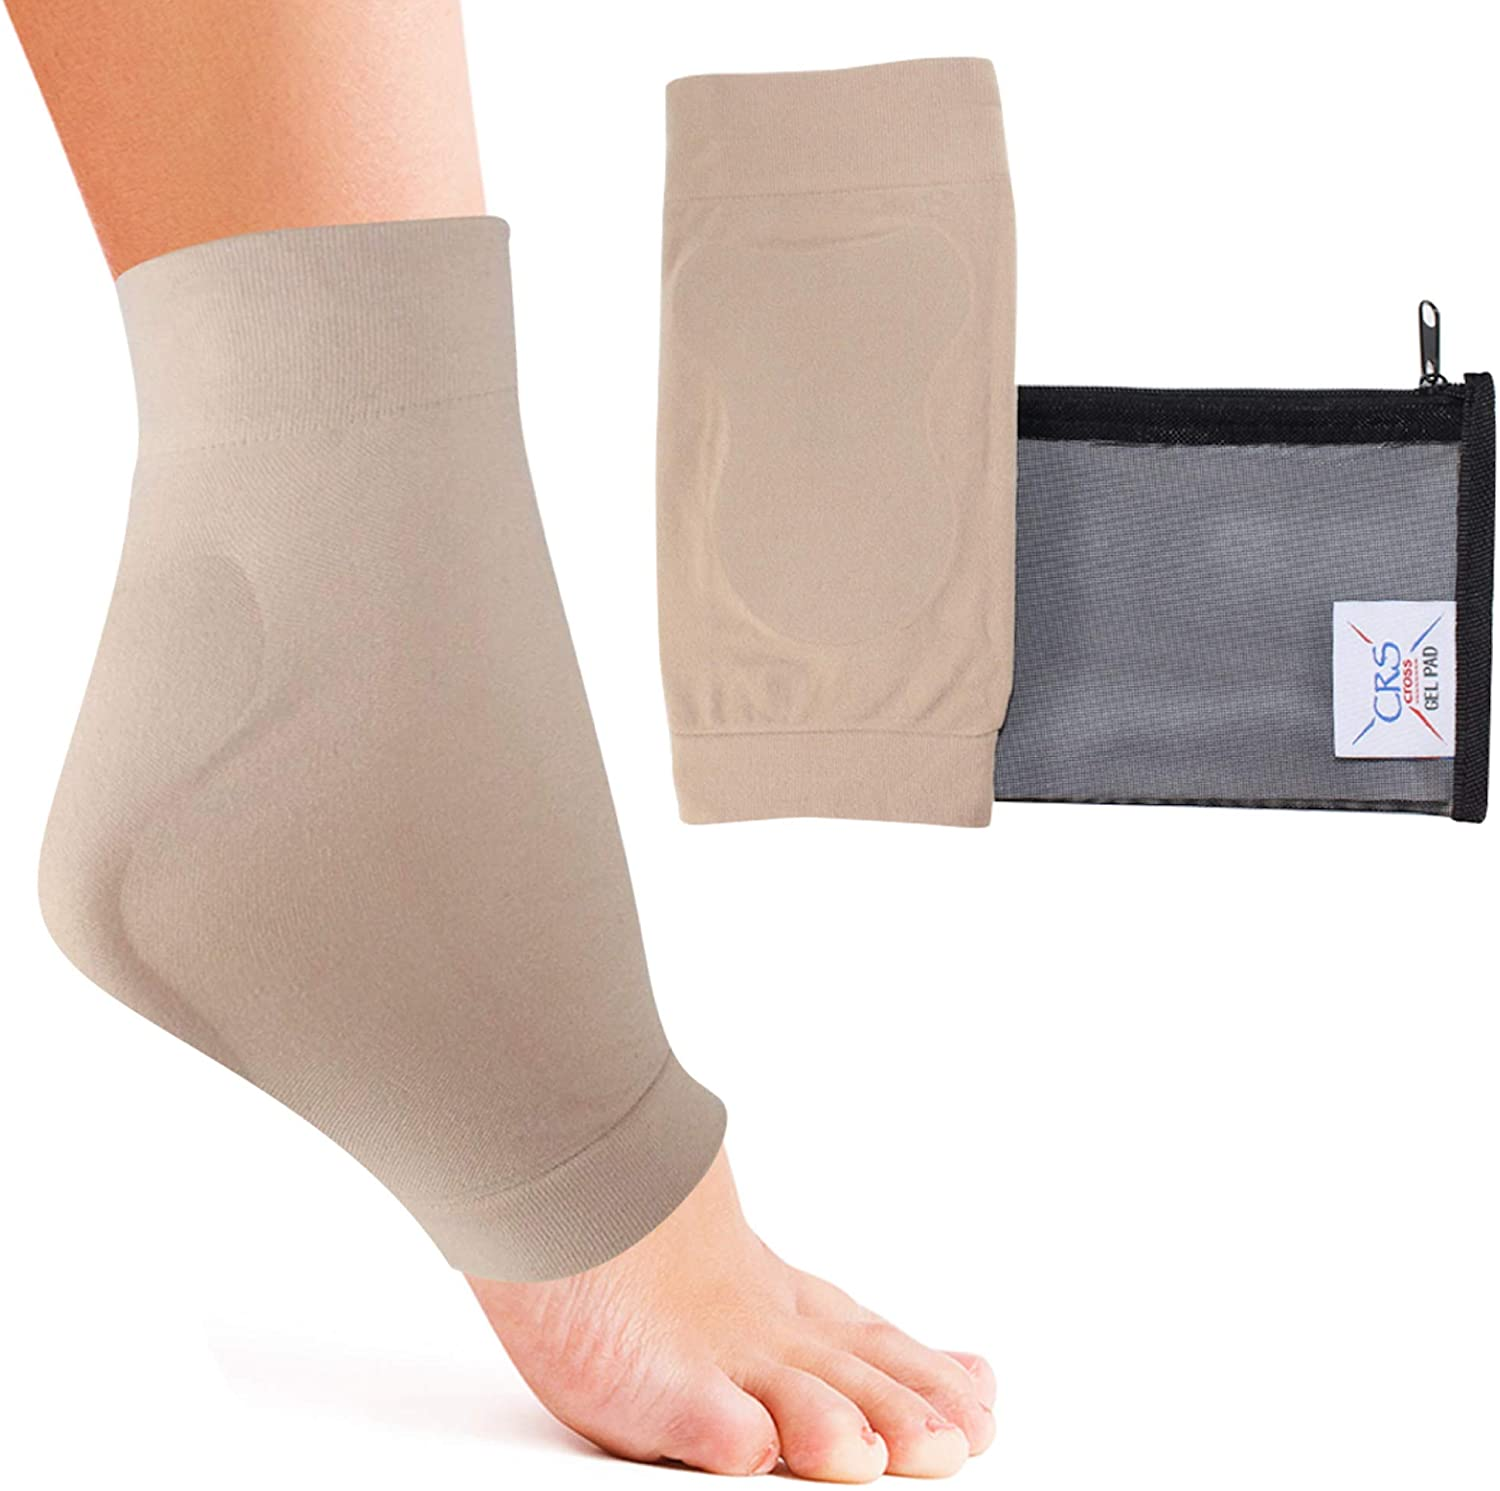 CRS Cross Achilles Heel Sleeve - Premium Padded Compression Gel Sleeve/Sock for Cushion & Protection of Haglunds Bump, Achilles tendonitis, and Bursitis (One Size fits Most)